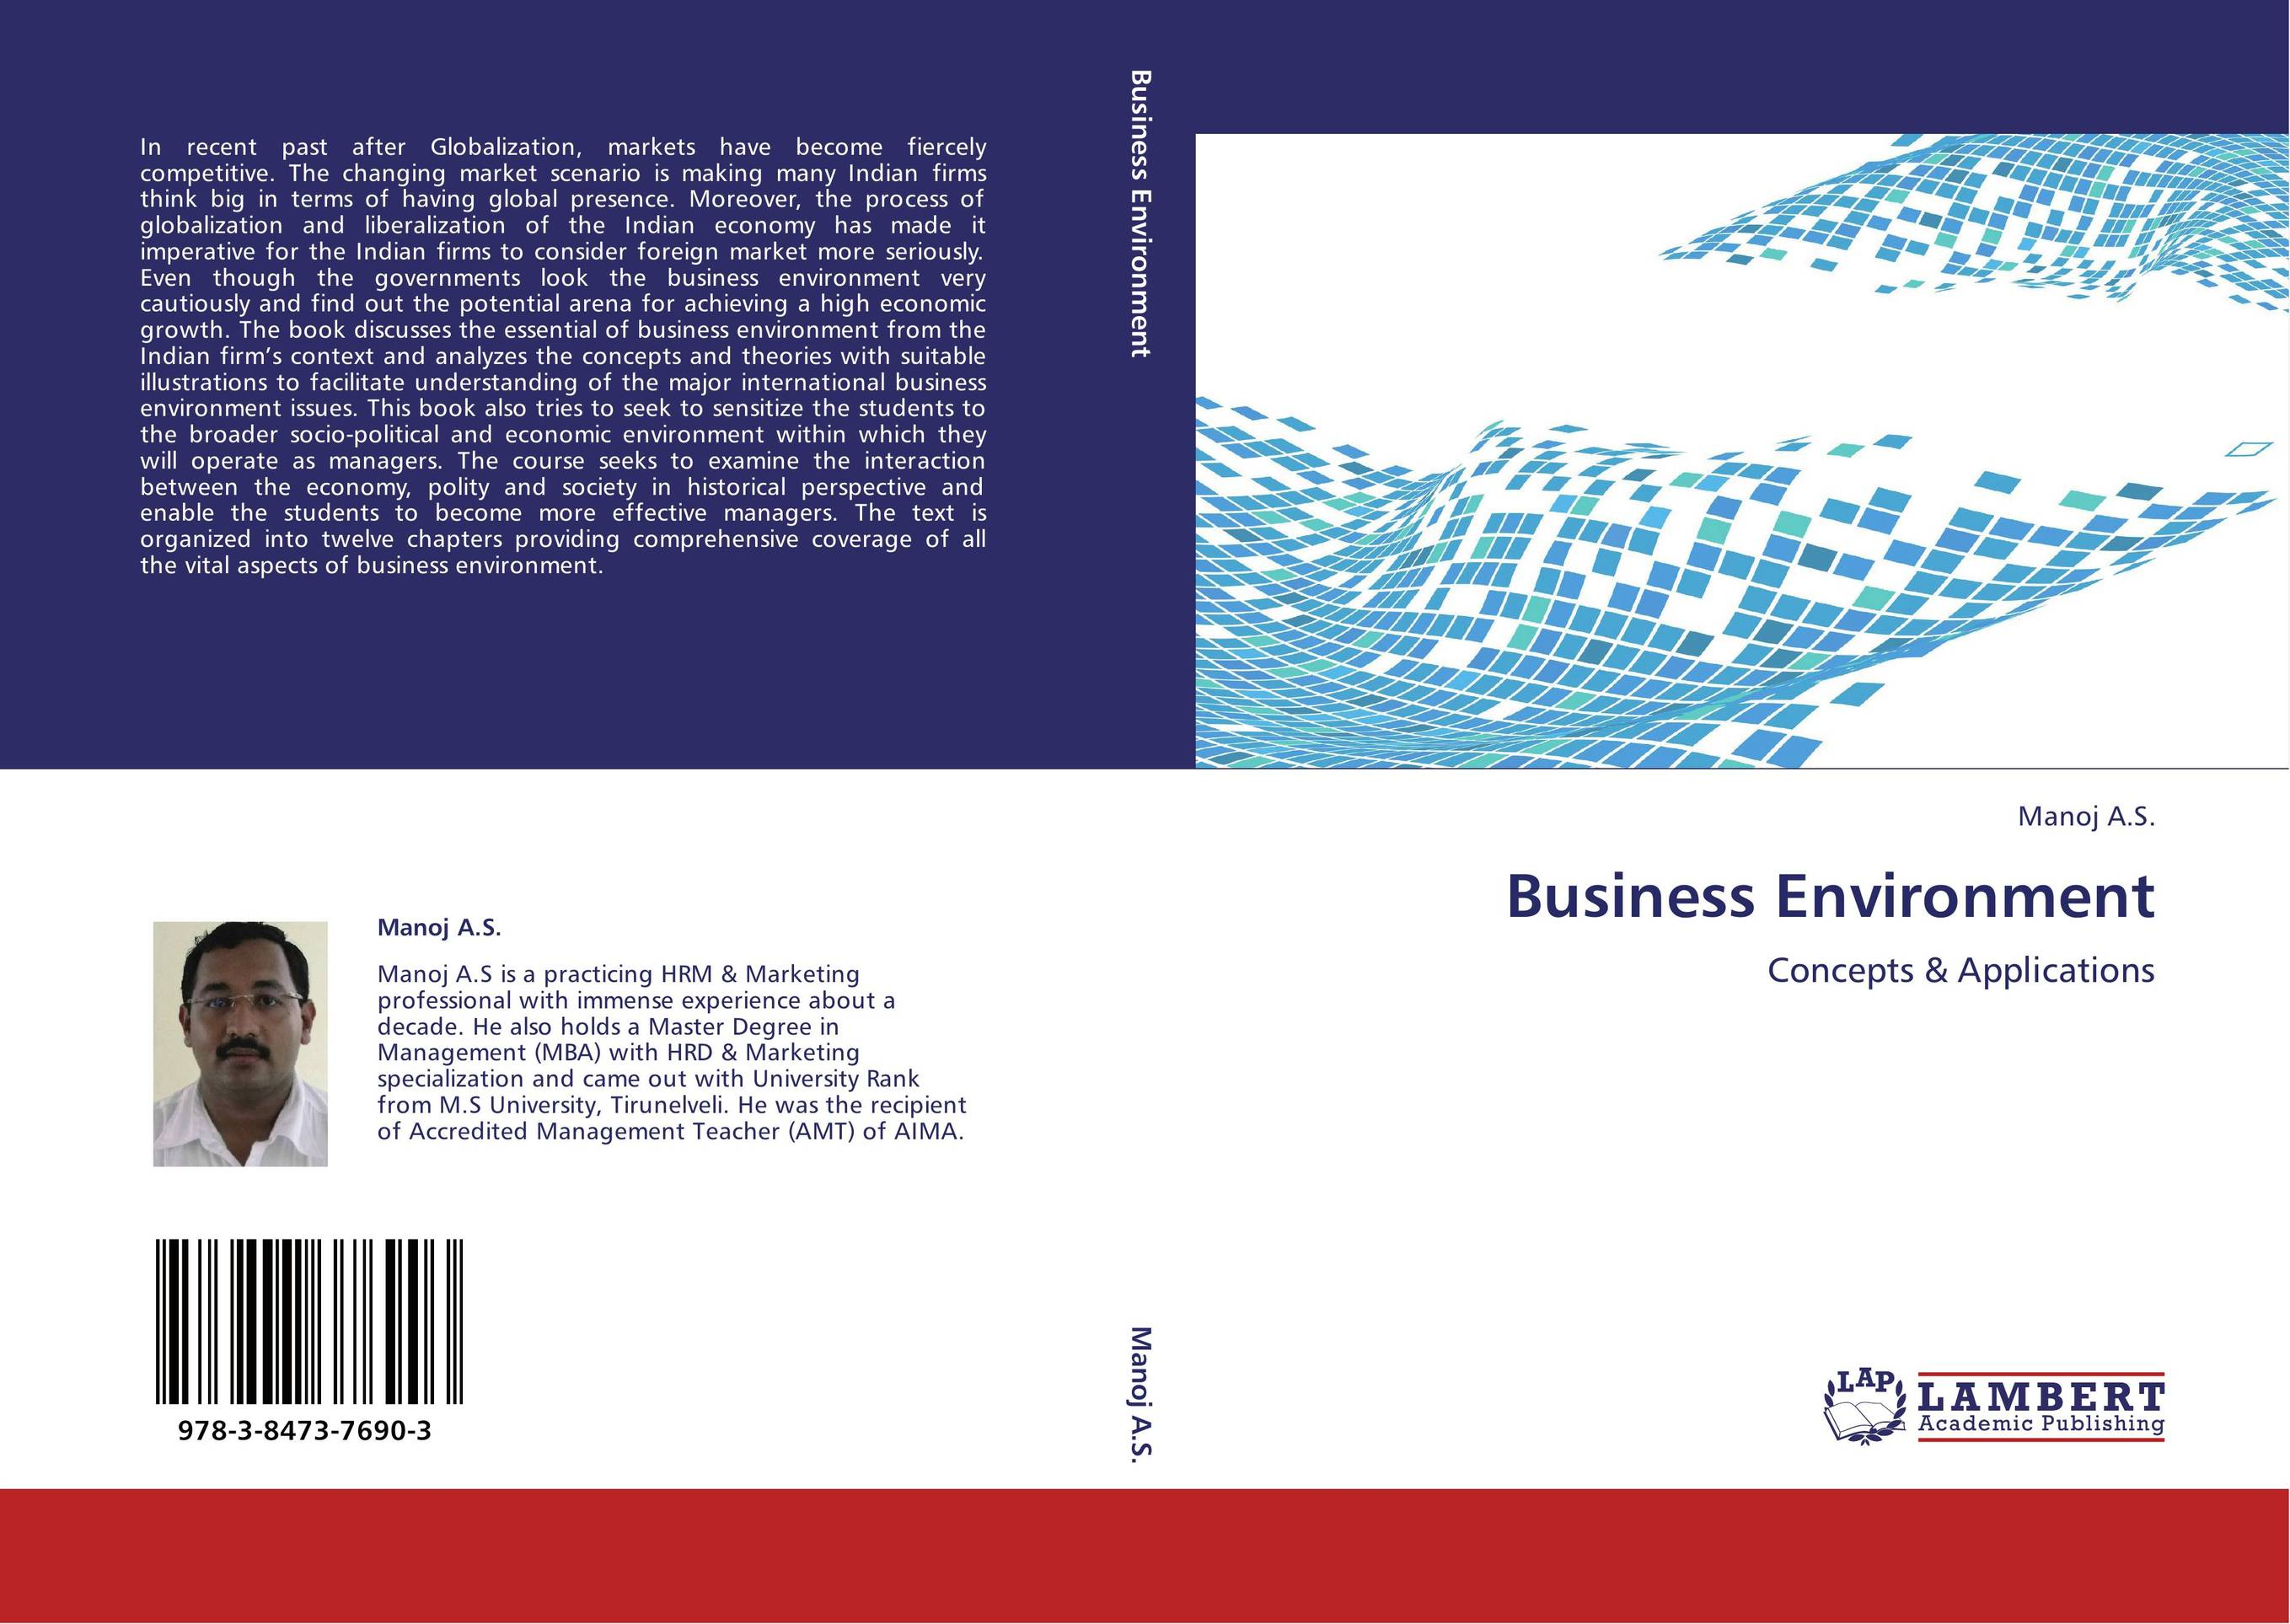 business competition in the current environment Internal business environmental factors including functional areas of the organization, objectives of the organization, strength of the organization, problems of the organization, and human resources.